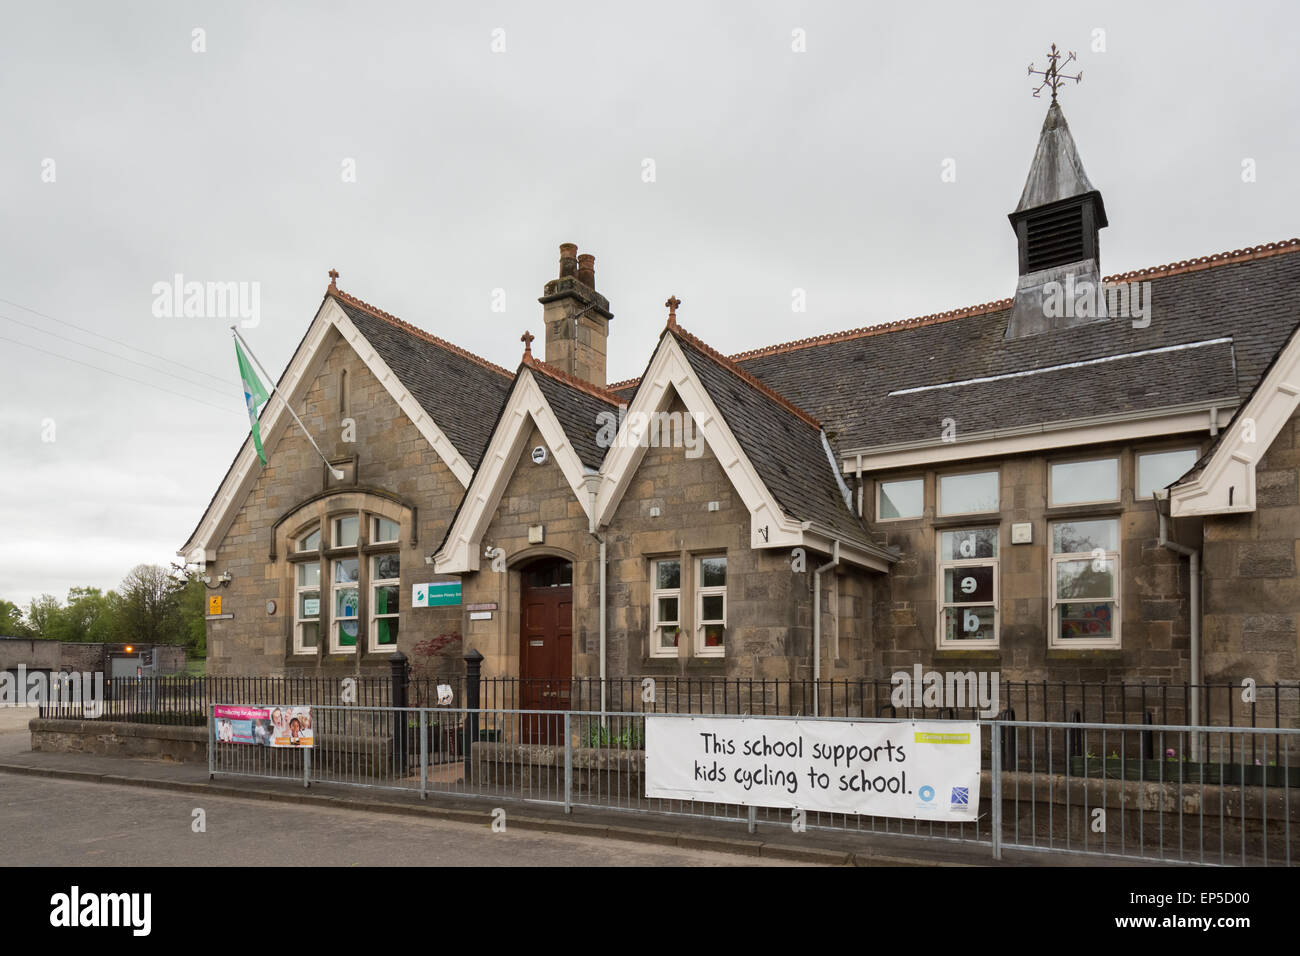 Deanston Primary School, Perth, Scotland - built in 1897 - with approximately 24 pupils - Stock Image